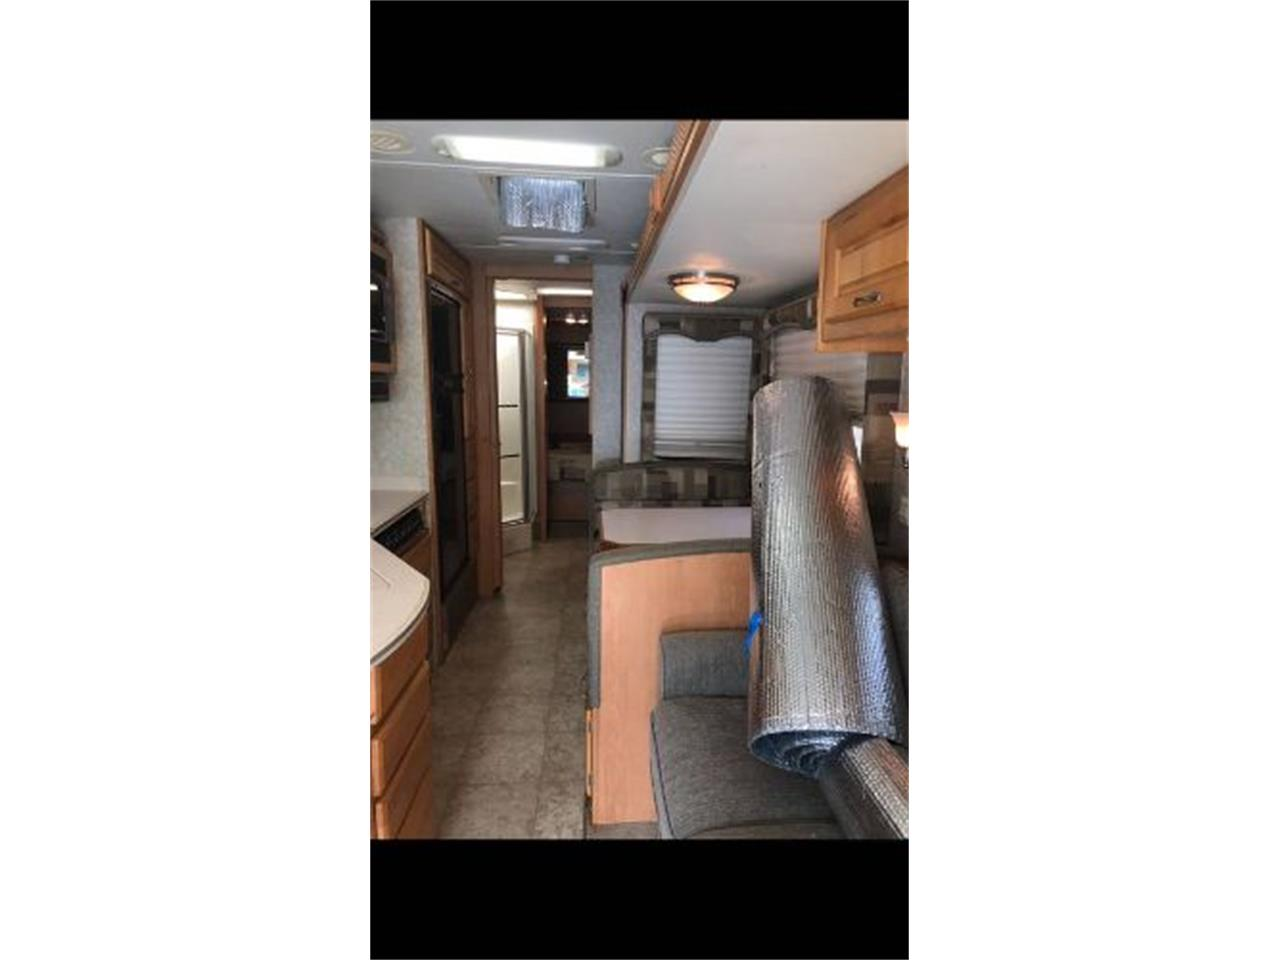 2006 Holiday Rambler Recreational Vehicle (CC-1208597) for sale in Cadillac, Michigan